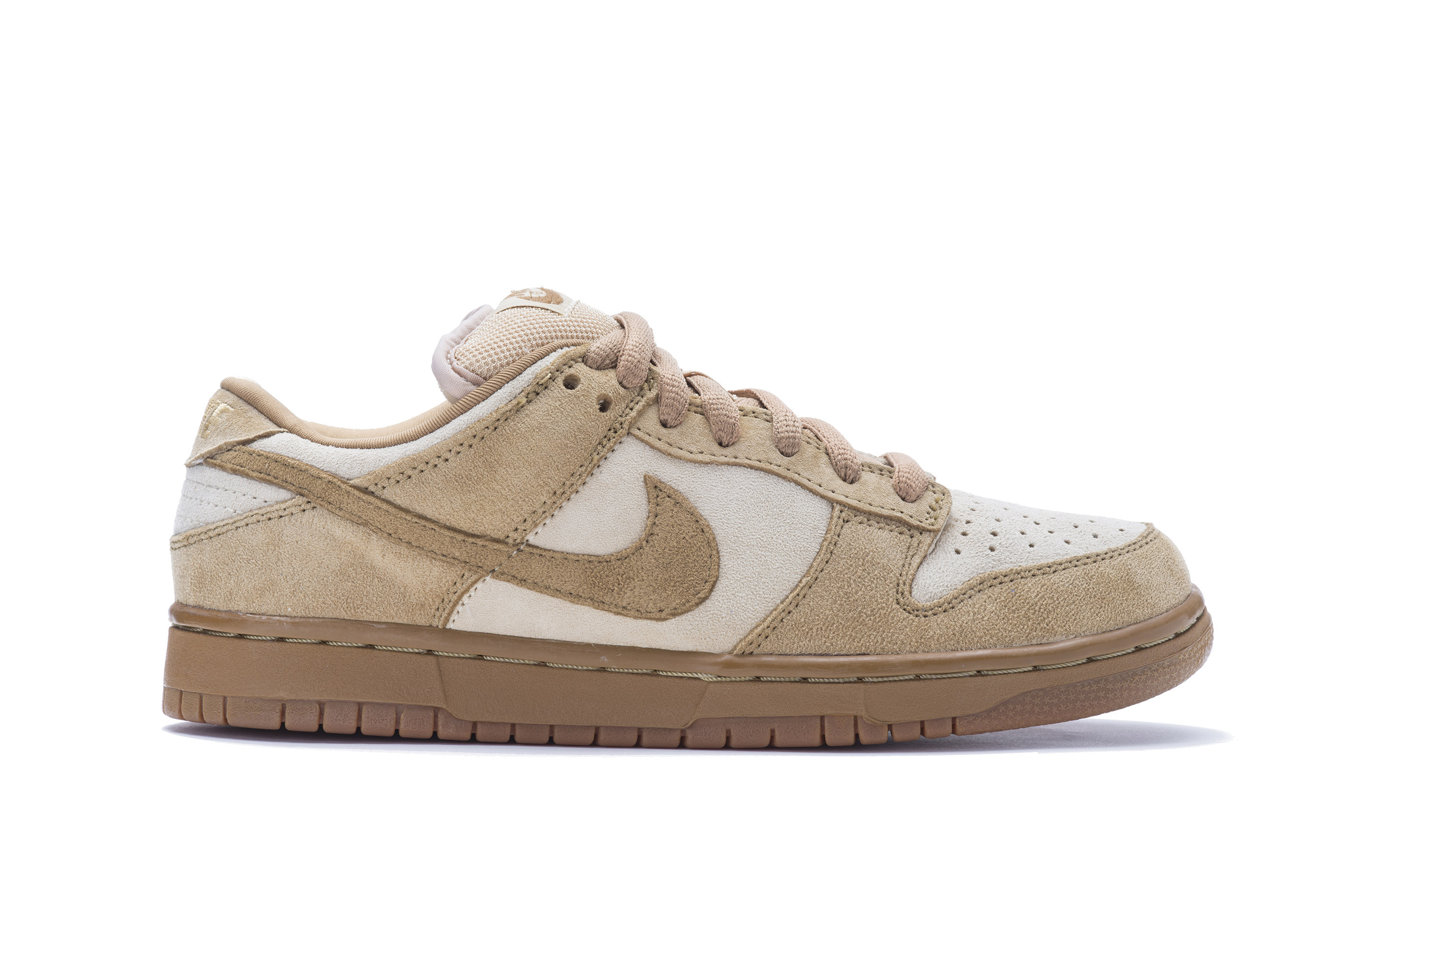 Nike SB original Reese Forbes Wheat Dunks